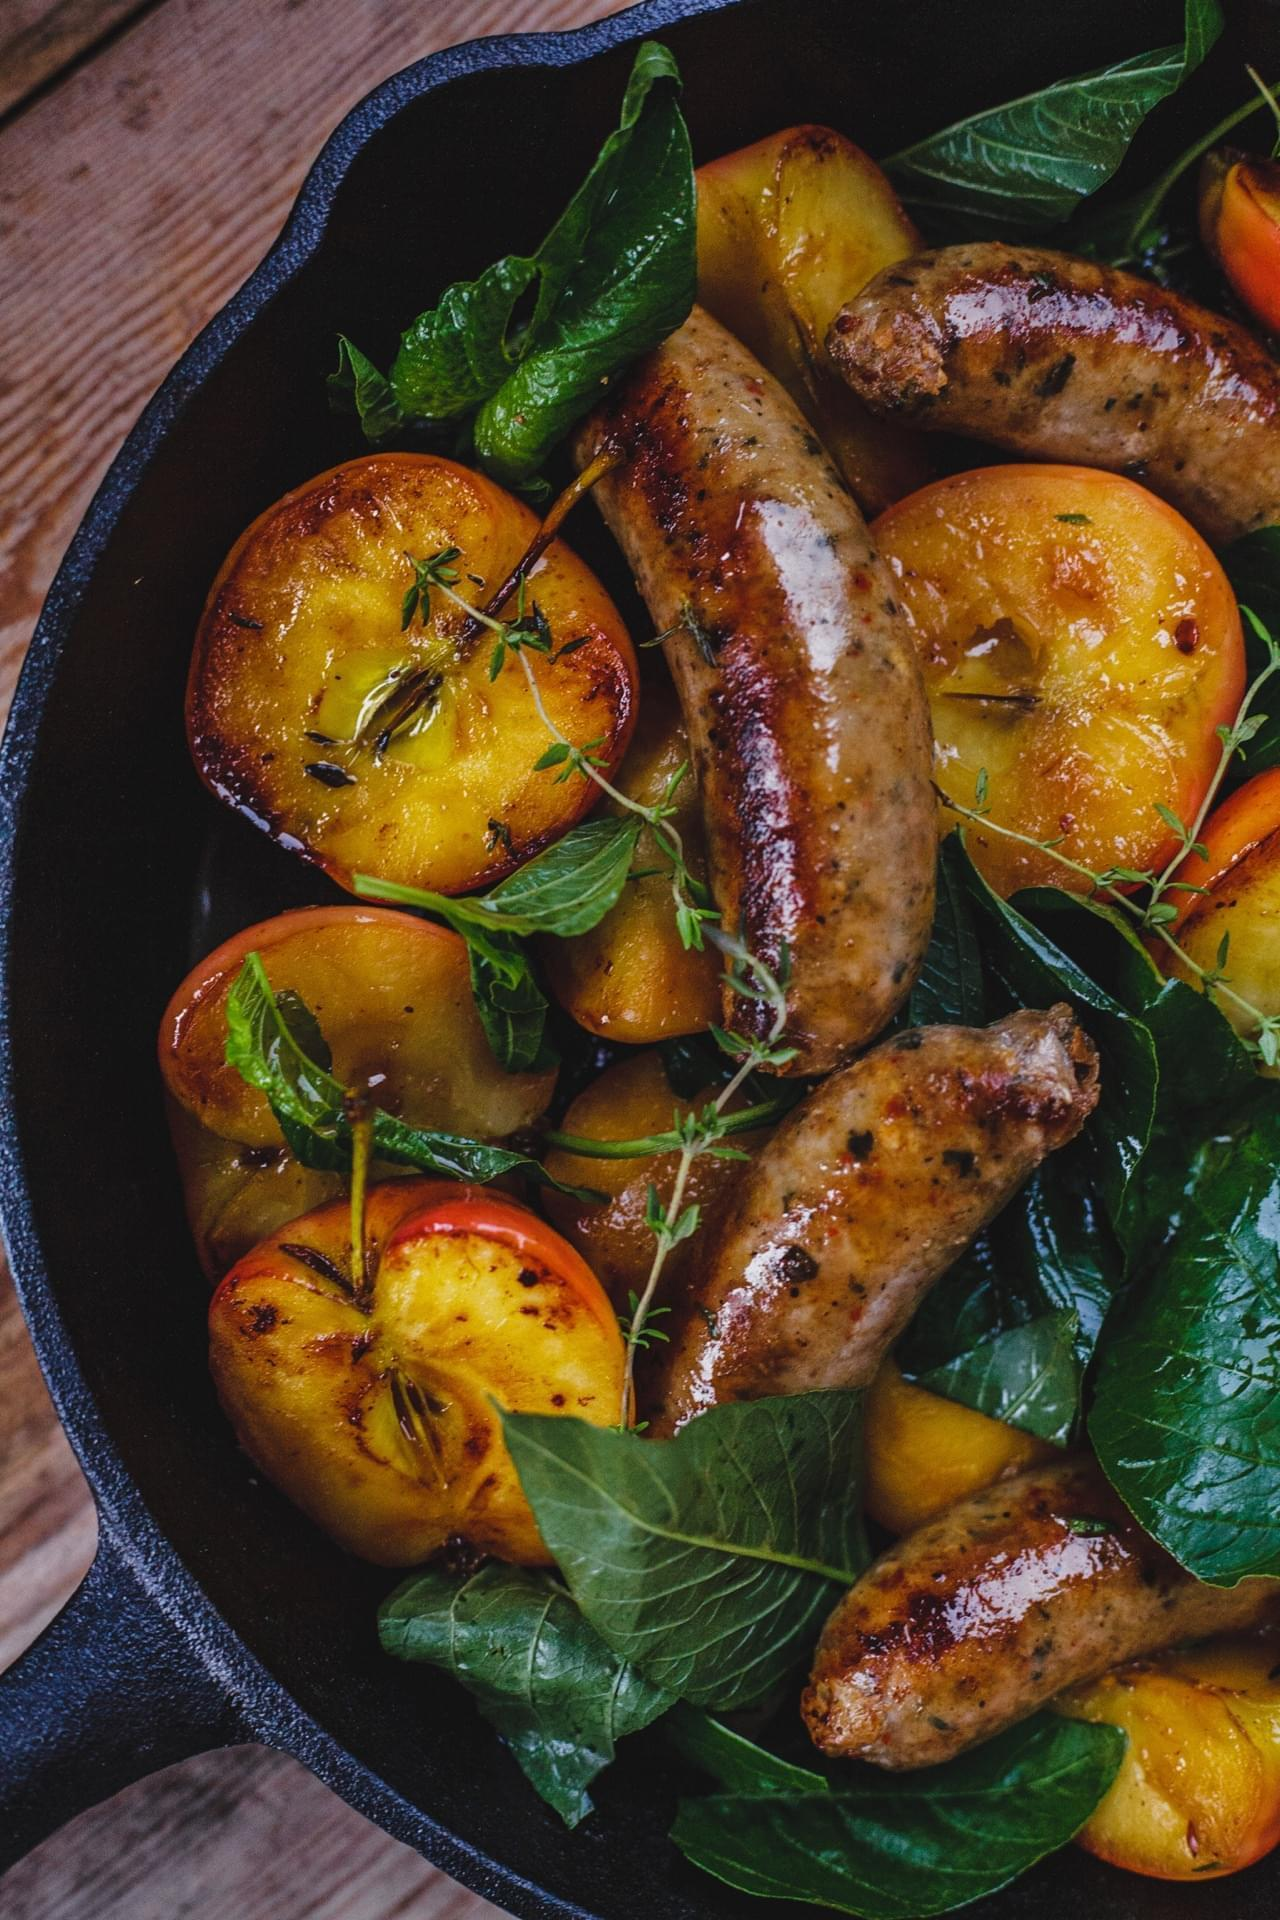 Pan Seared Sausages, Apples With Honey And Greens